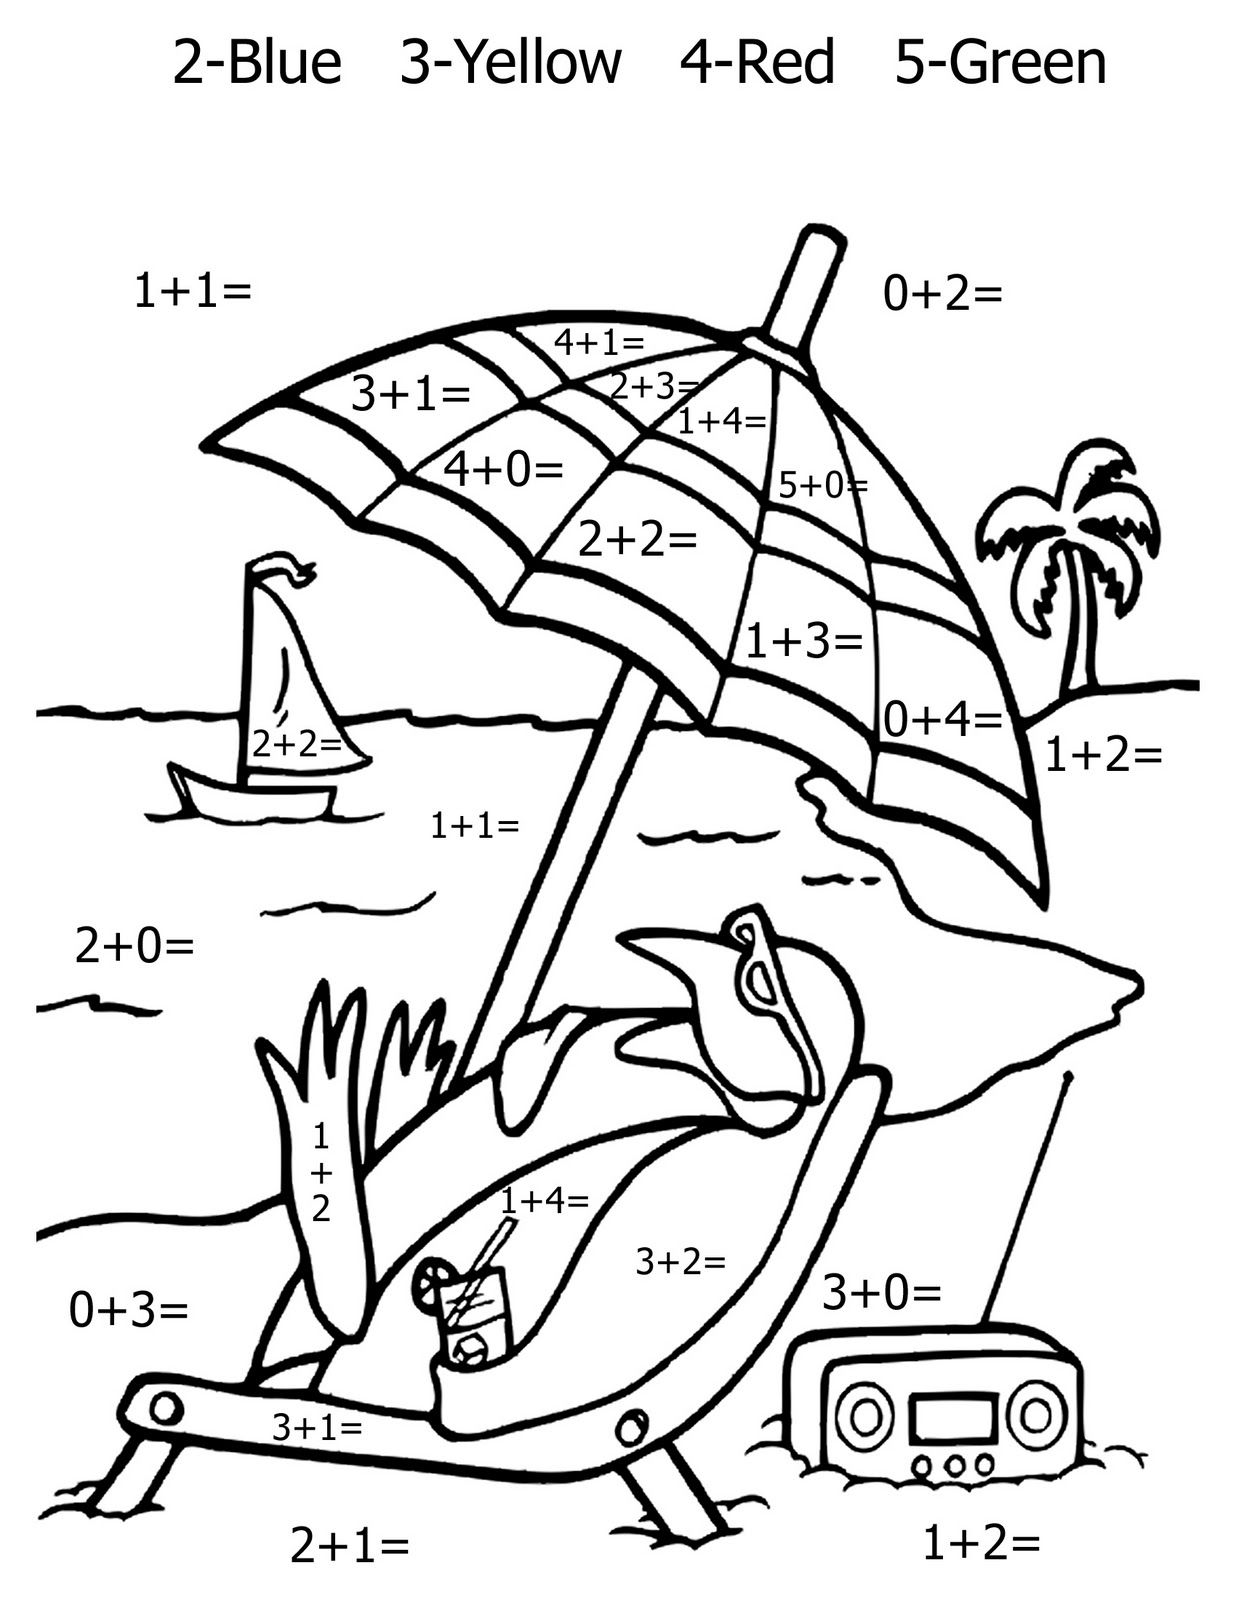 Coloring pages for double digit subtraction - Explore Kindergarten Coloring Pages And More